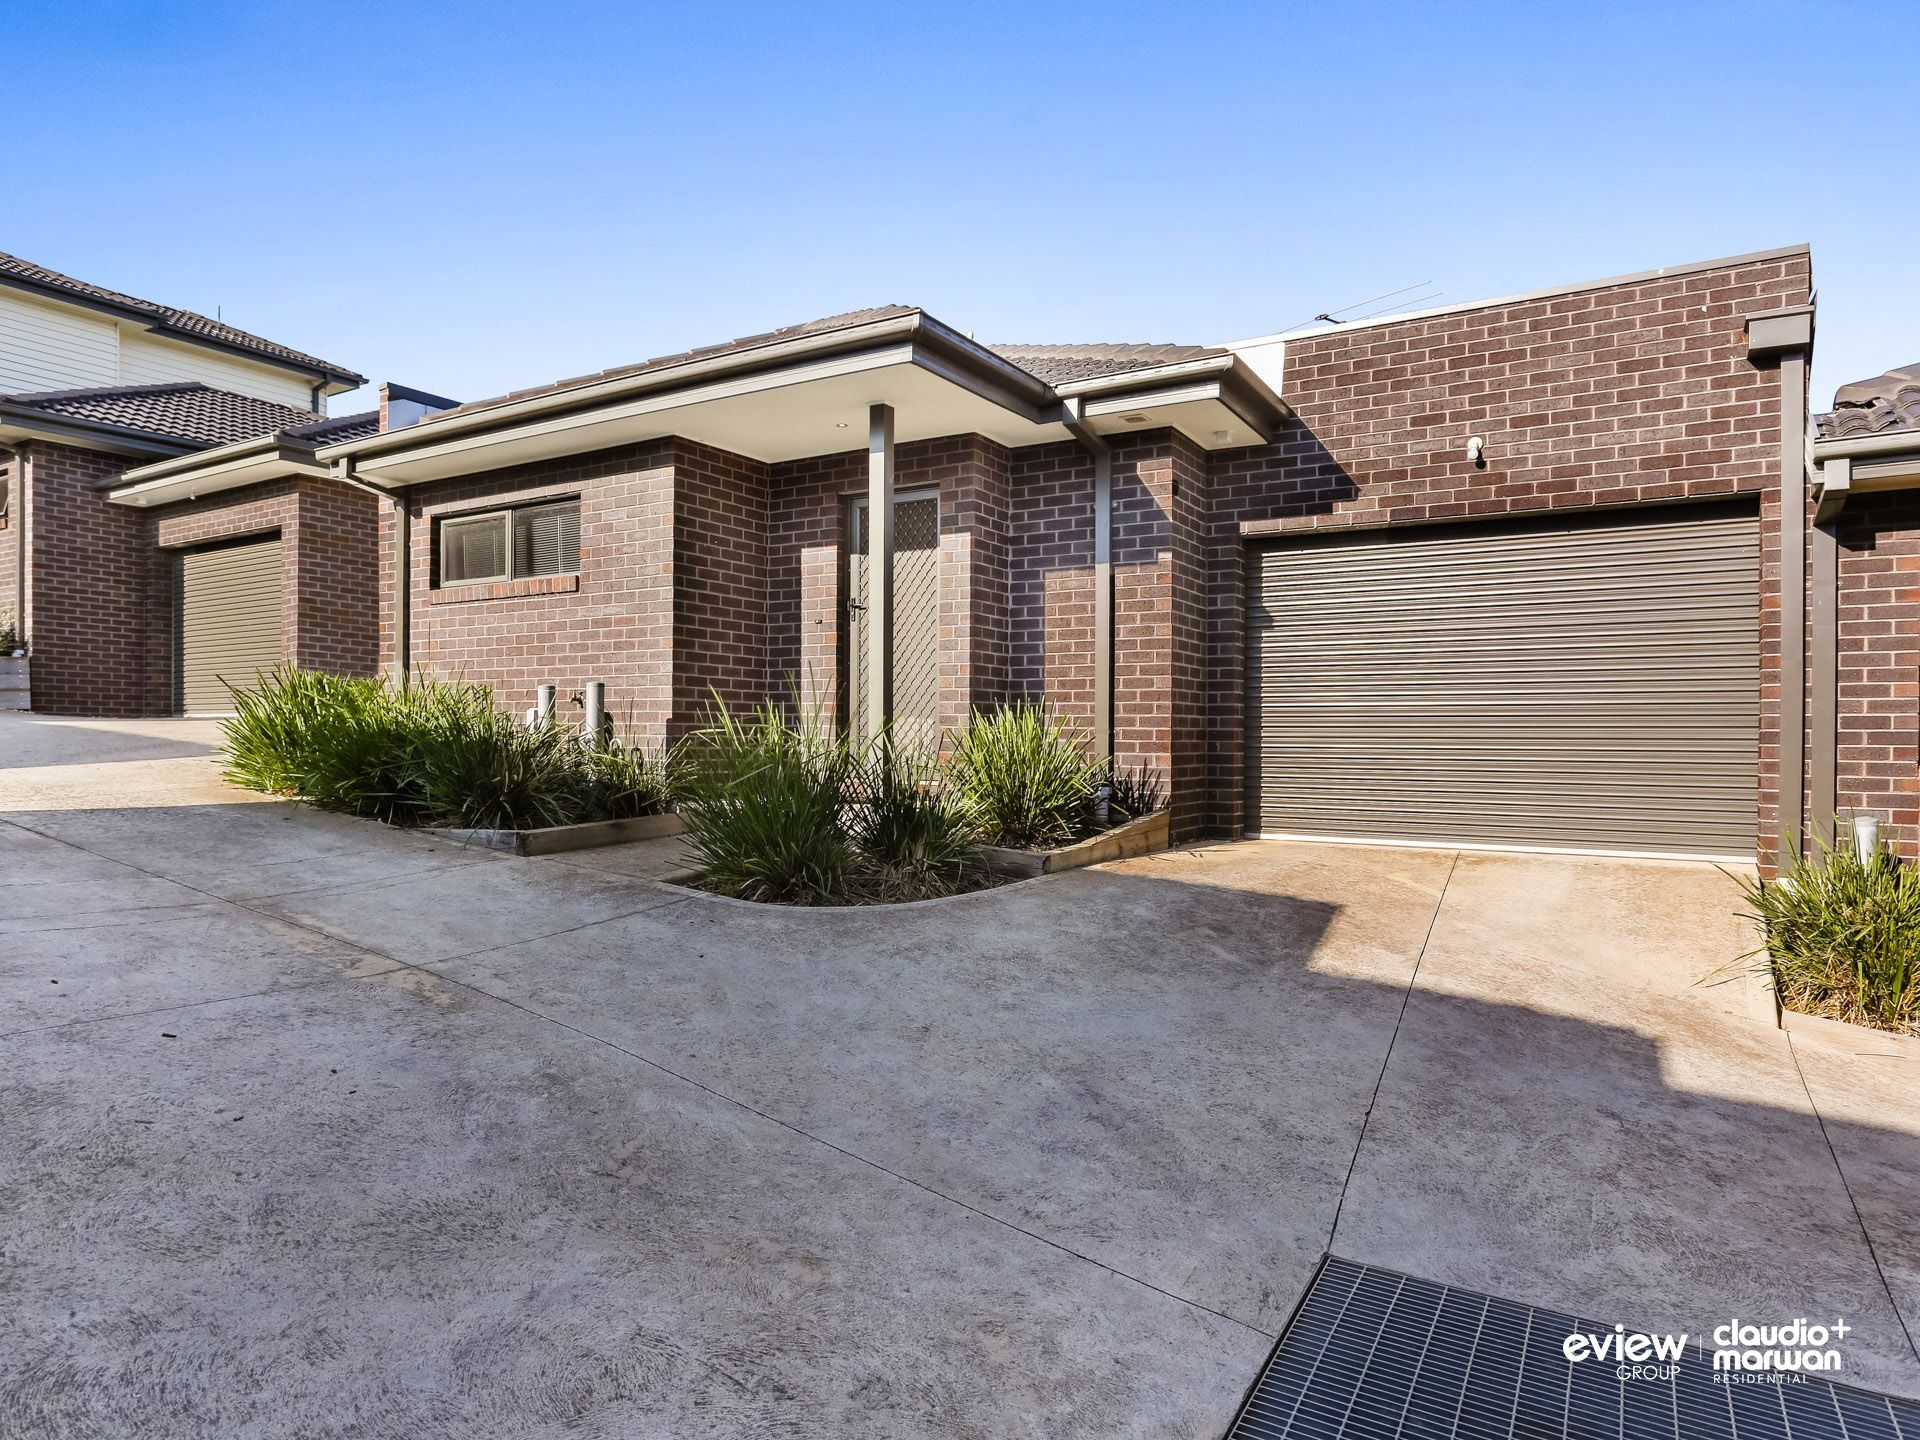 4/23-25 Sefton Street, PASCOE VALE, VIC, 3044 - Image